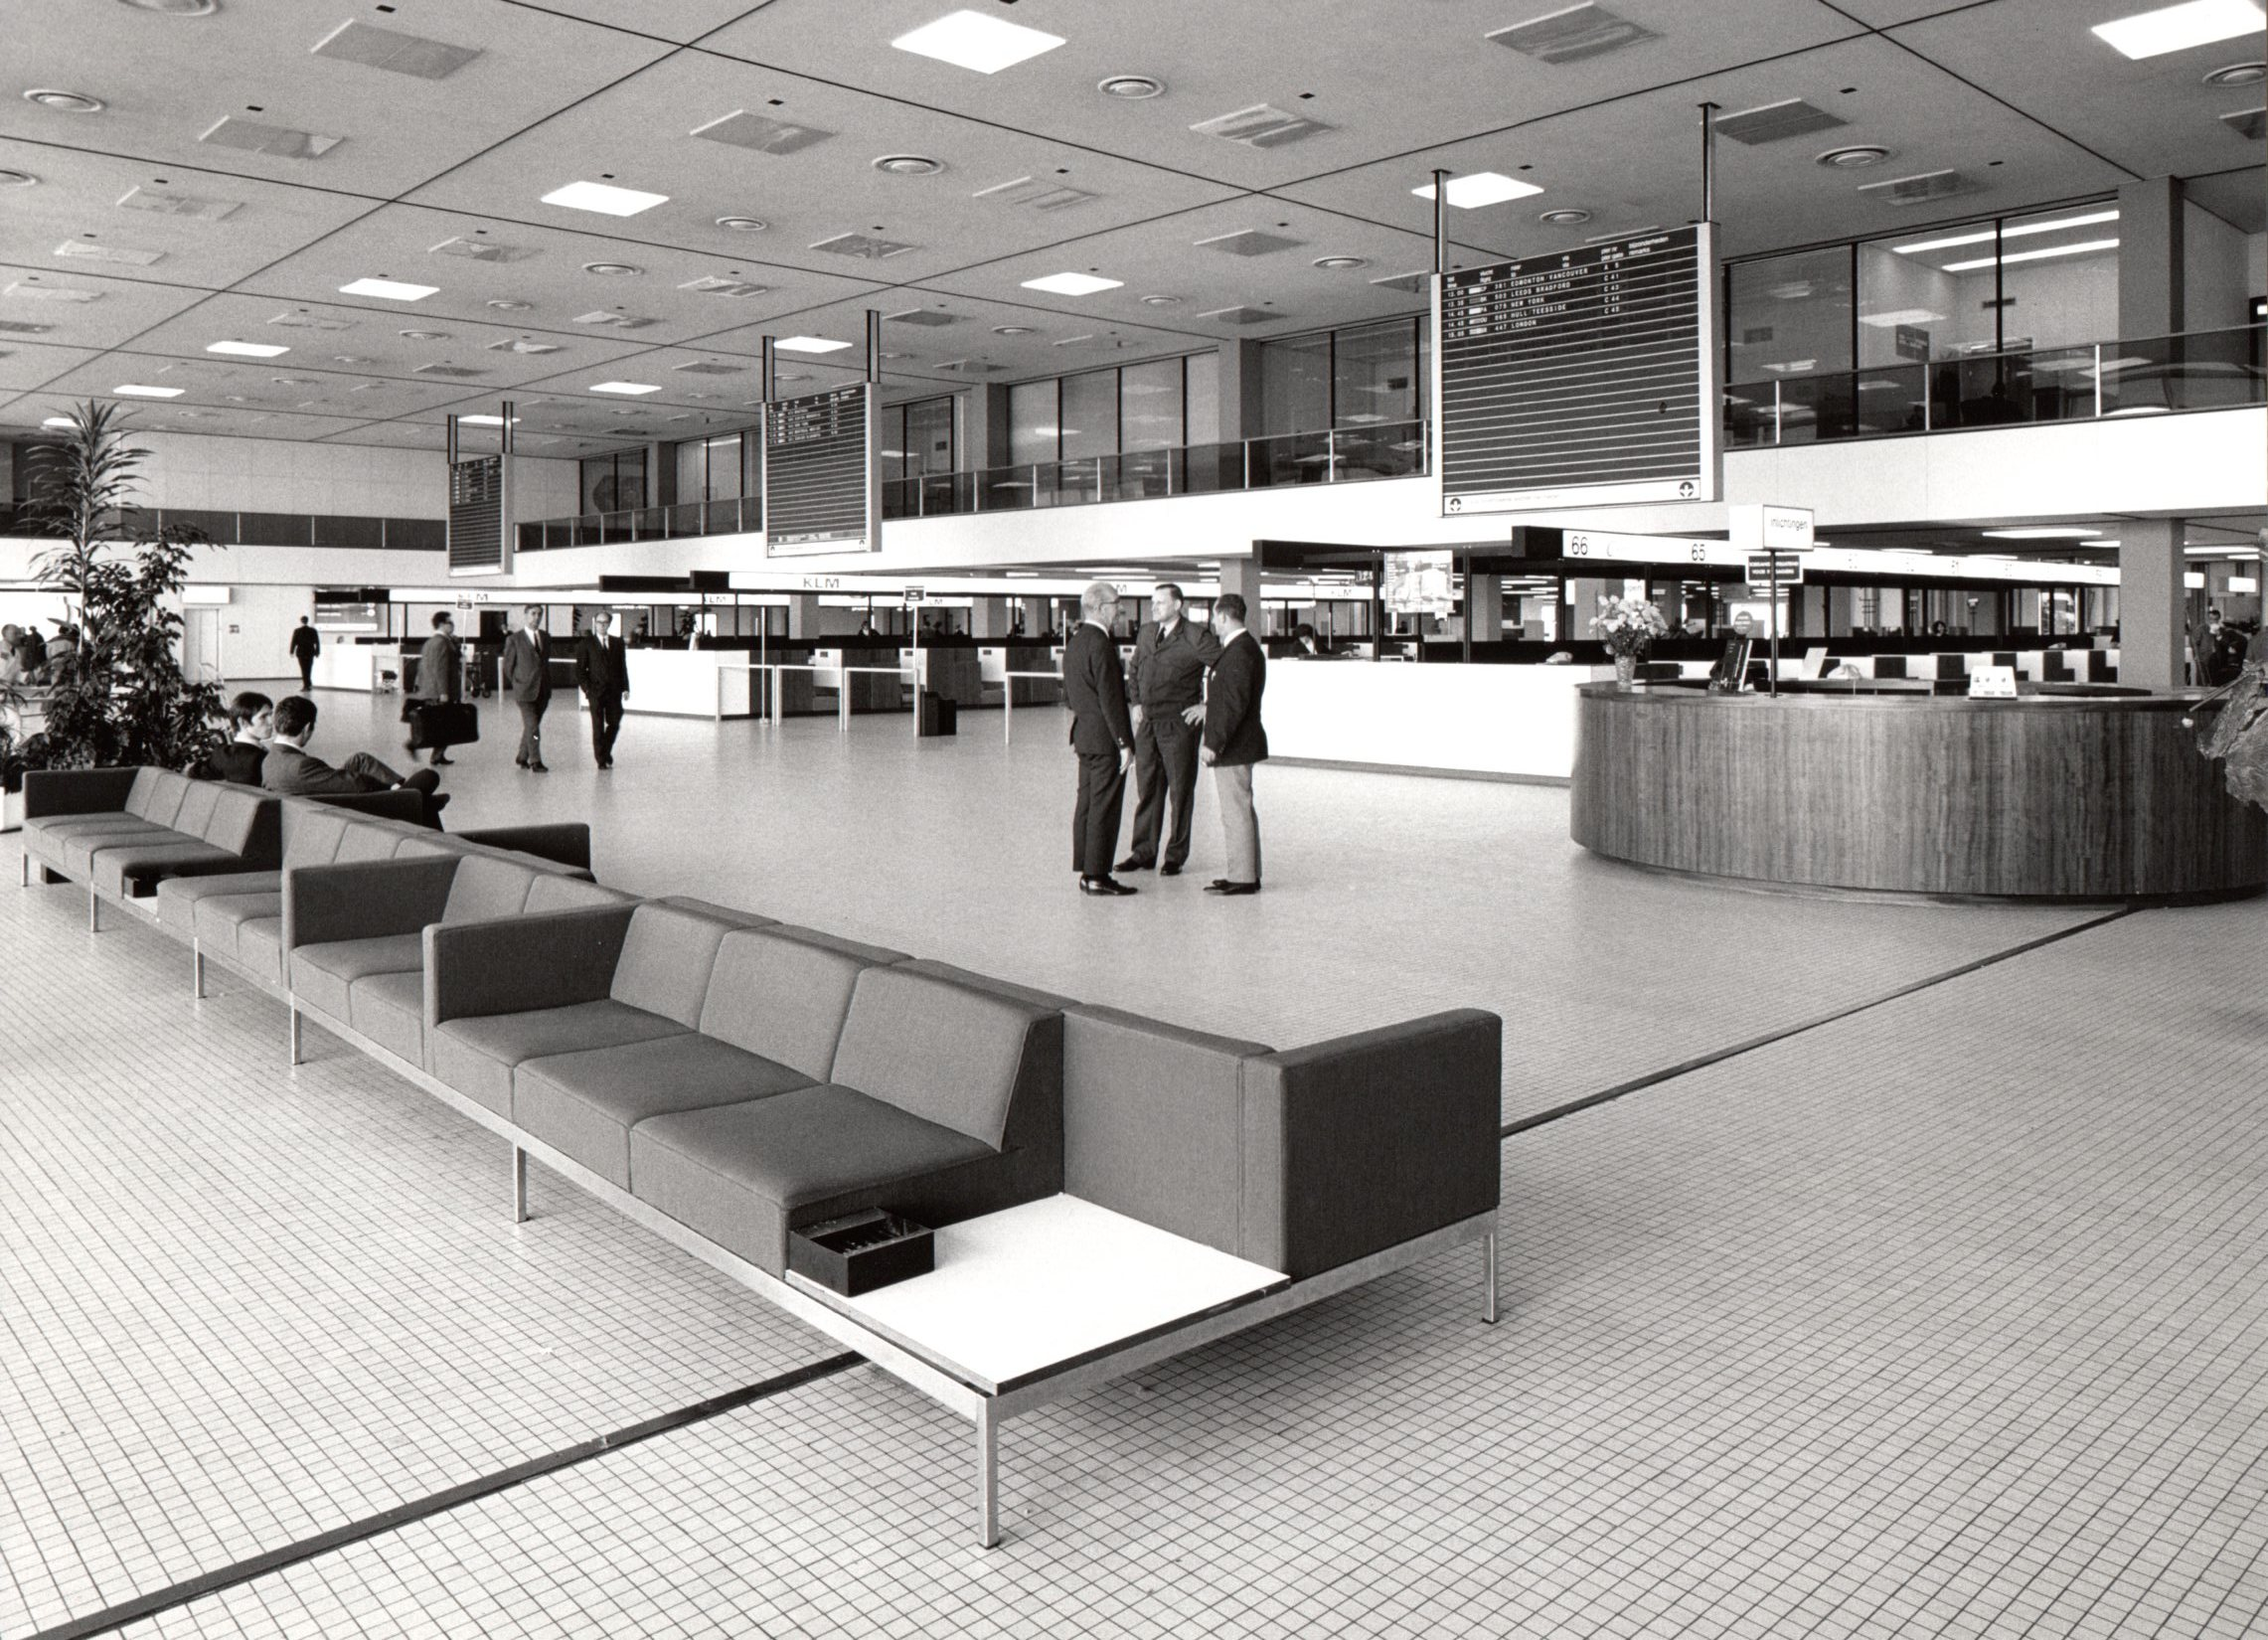 Series 720 was designed for Schiphol (Amsterdam Airport) Here seen in 1967. Photo Jan Versnel